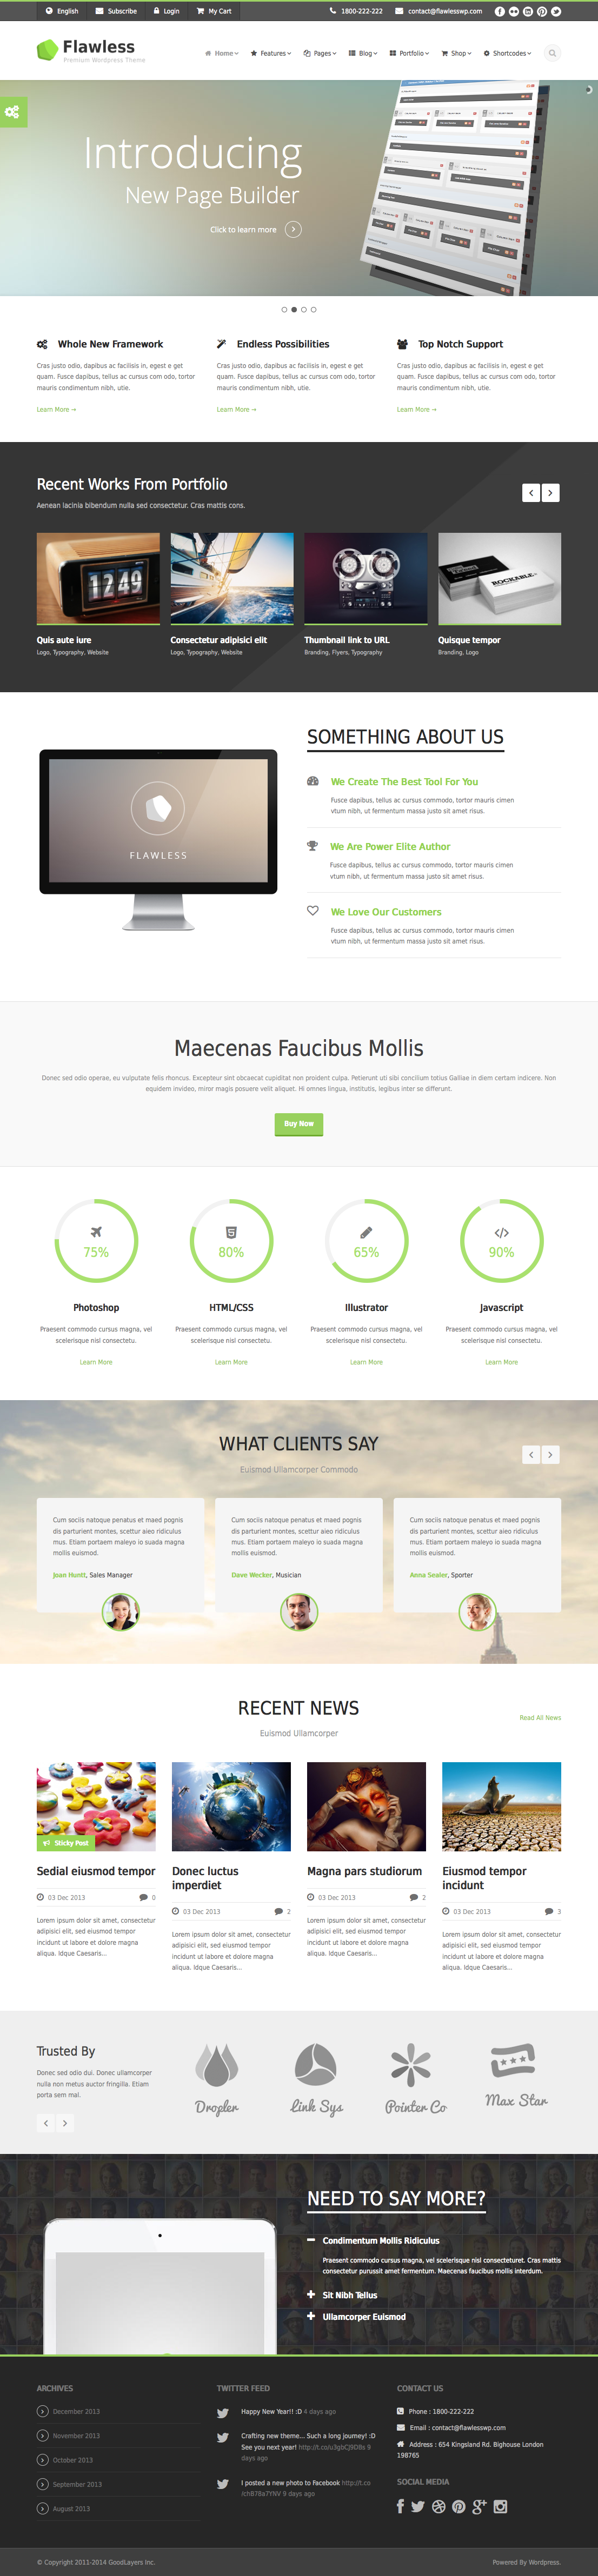 Flawless - Responsive Multi-Purpose WP Theme - index page with color changed